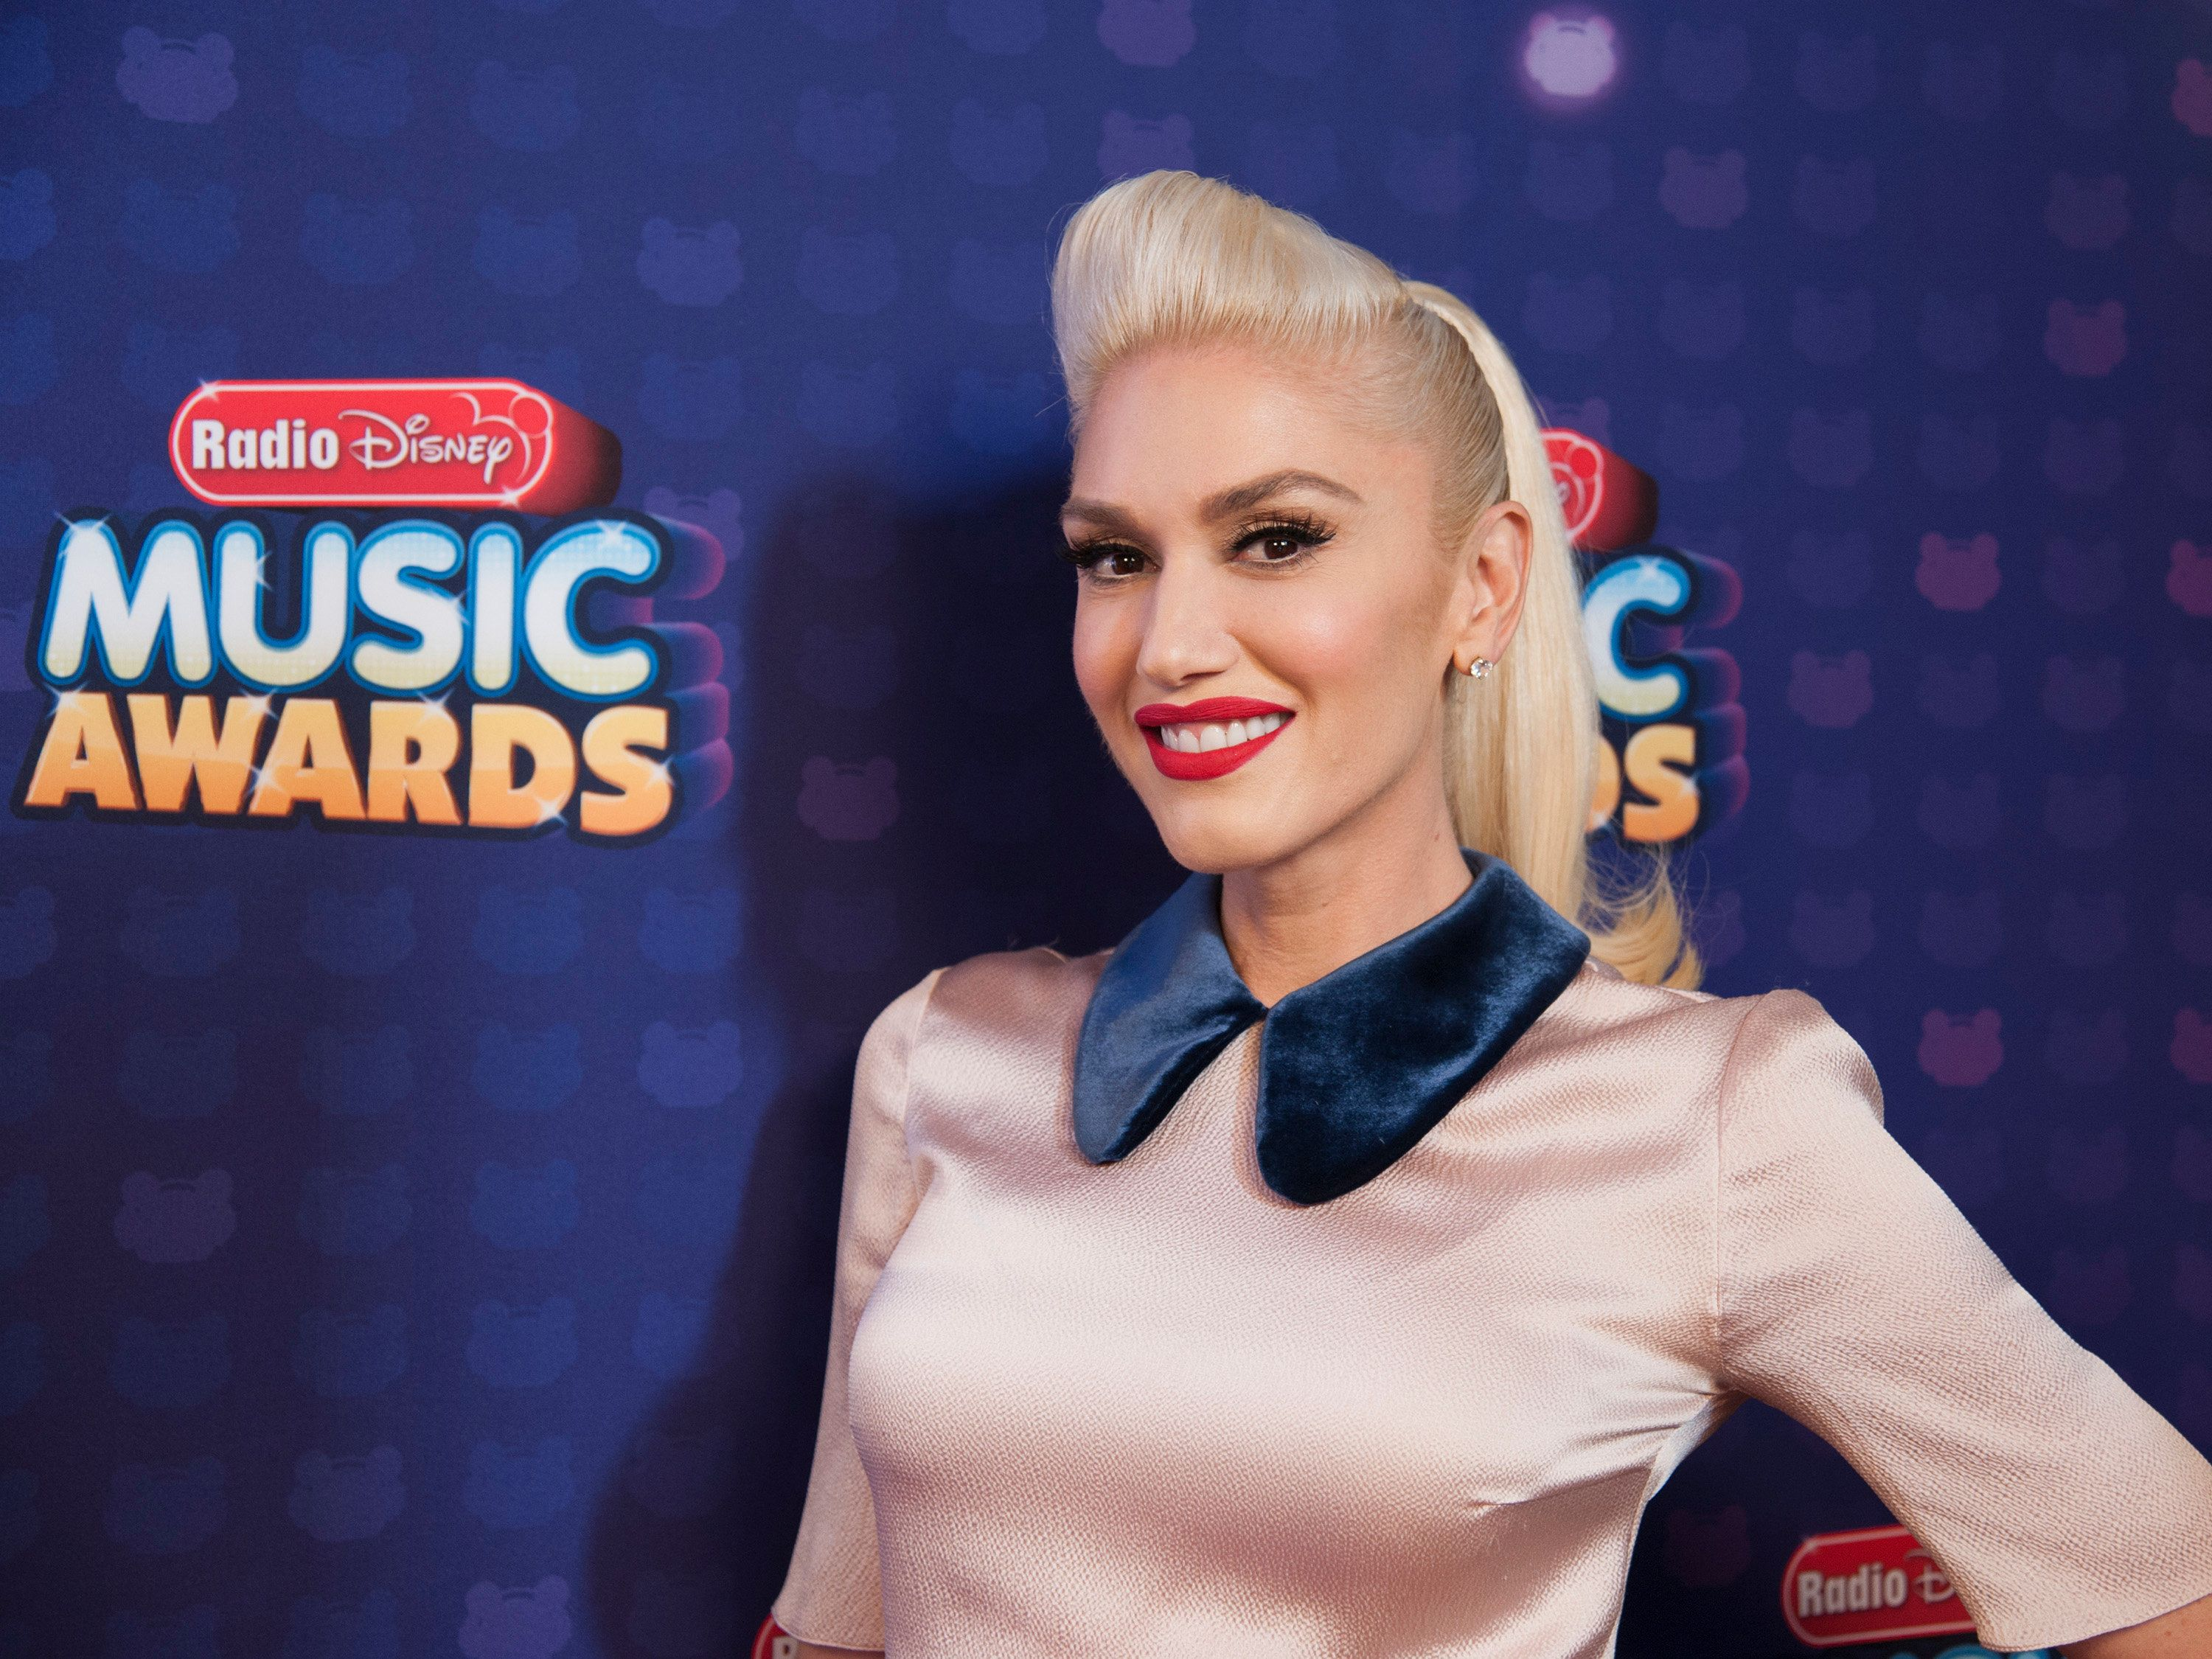 DISNEY CHANNEL PRESENTS THE RADIO DISNEY MUSIC AWARDS - Entertainment's brightest young stars turned out for the 2016 Radio Disney Music Awards (RDMA), music's biggest event for families, at Microsoft Theater in Los Angeles on Saturday, April 30. 'Disney Channel Presents the 2016 Radio Disney Music Awards' airs Sunday, May 1 (7:00 p.m. EDT). (Image Group LA /Disney Channel) GWEN STEFANI